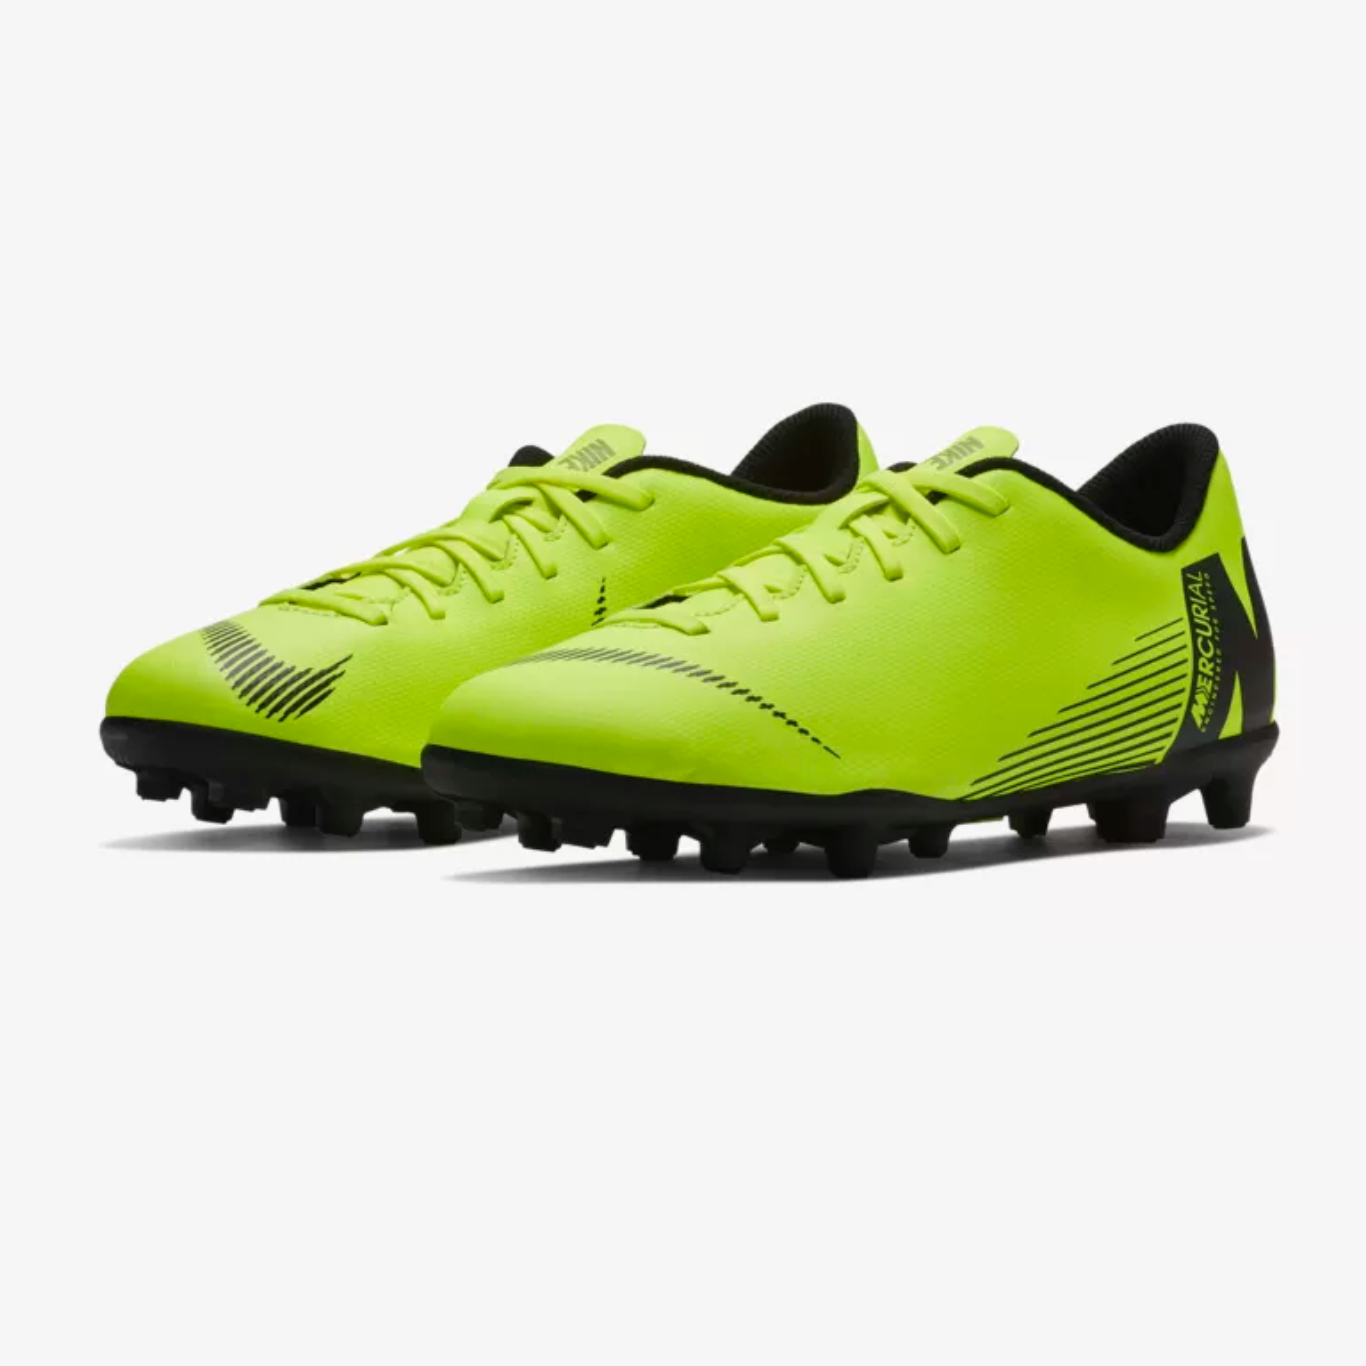 NIKE VAPOR 12 CLUB GS FG/MG AH7350-701 JR